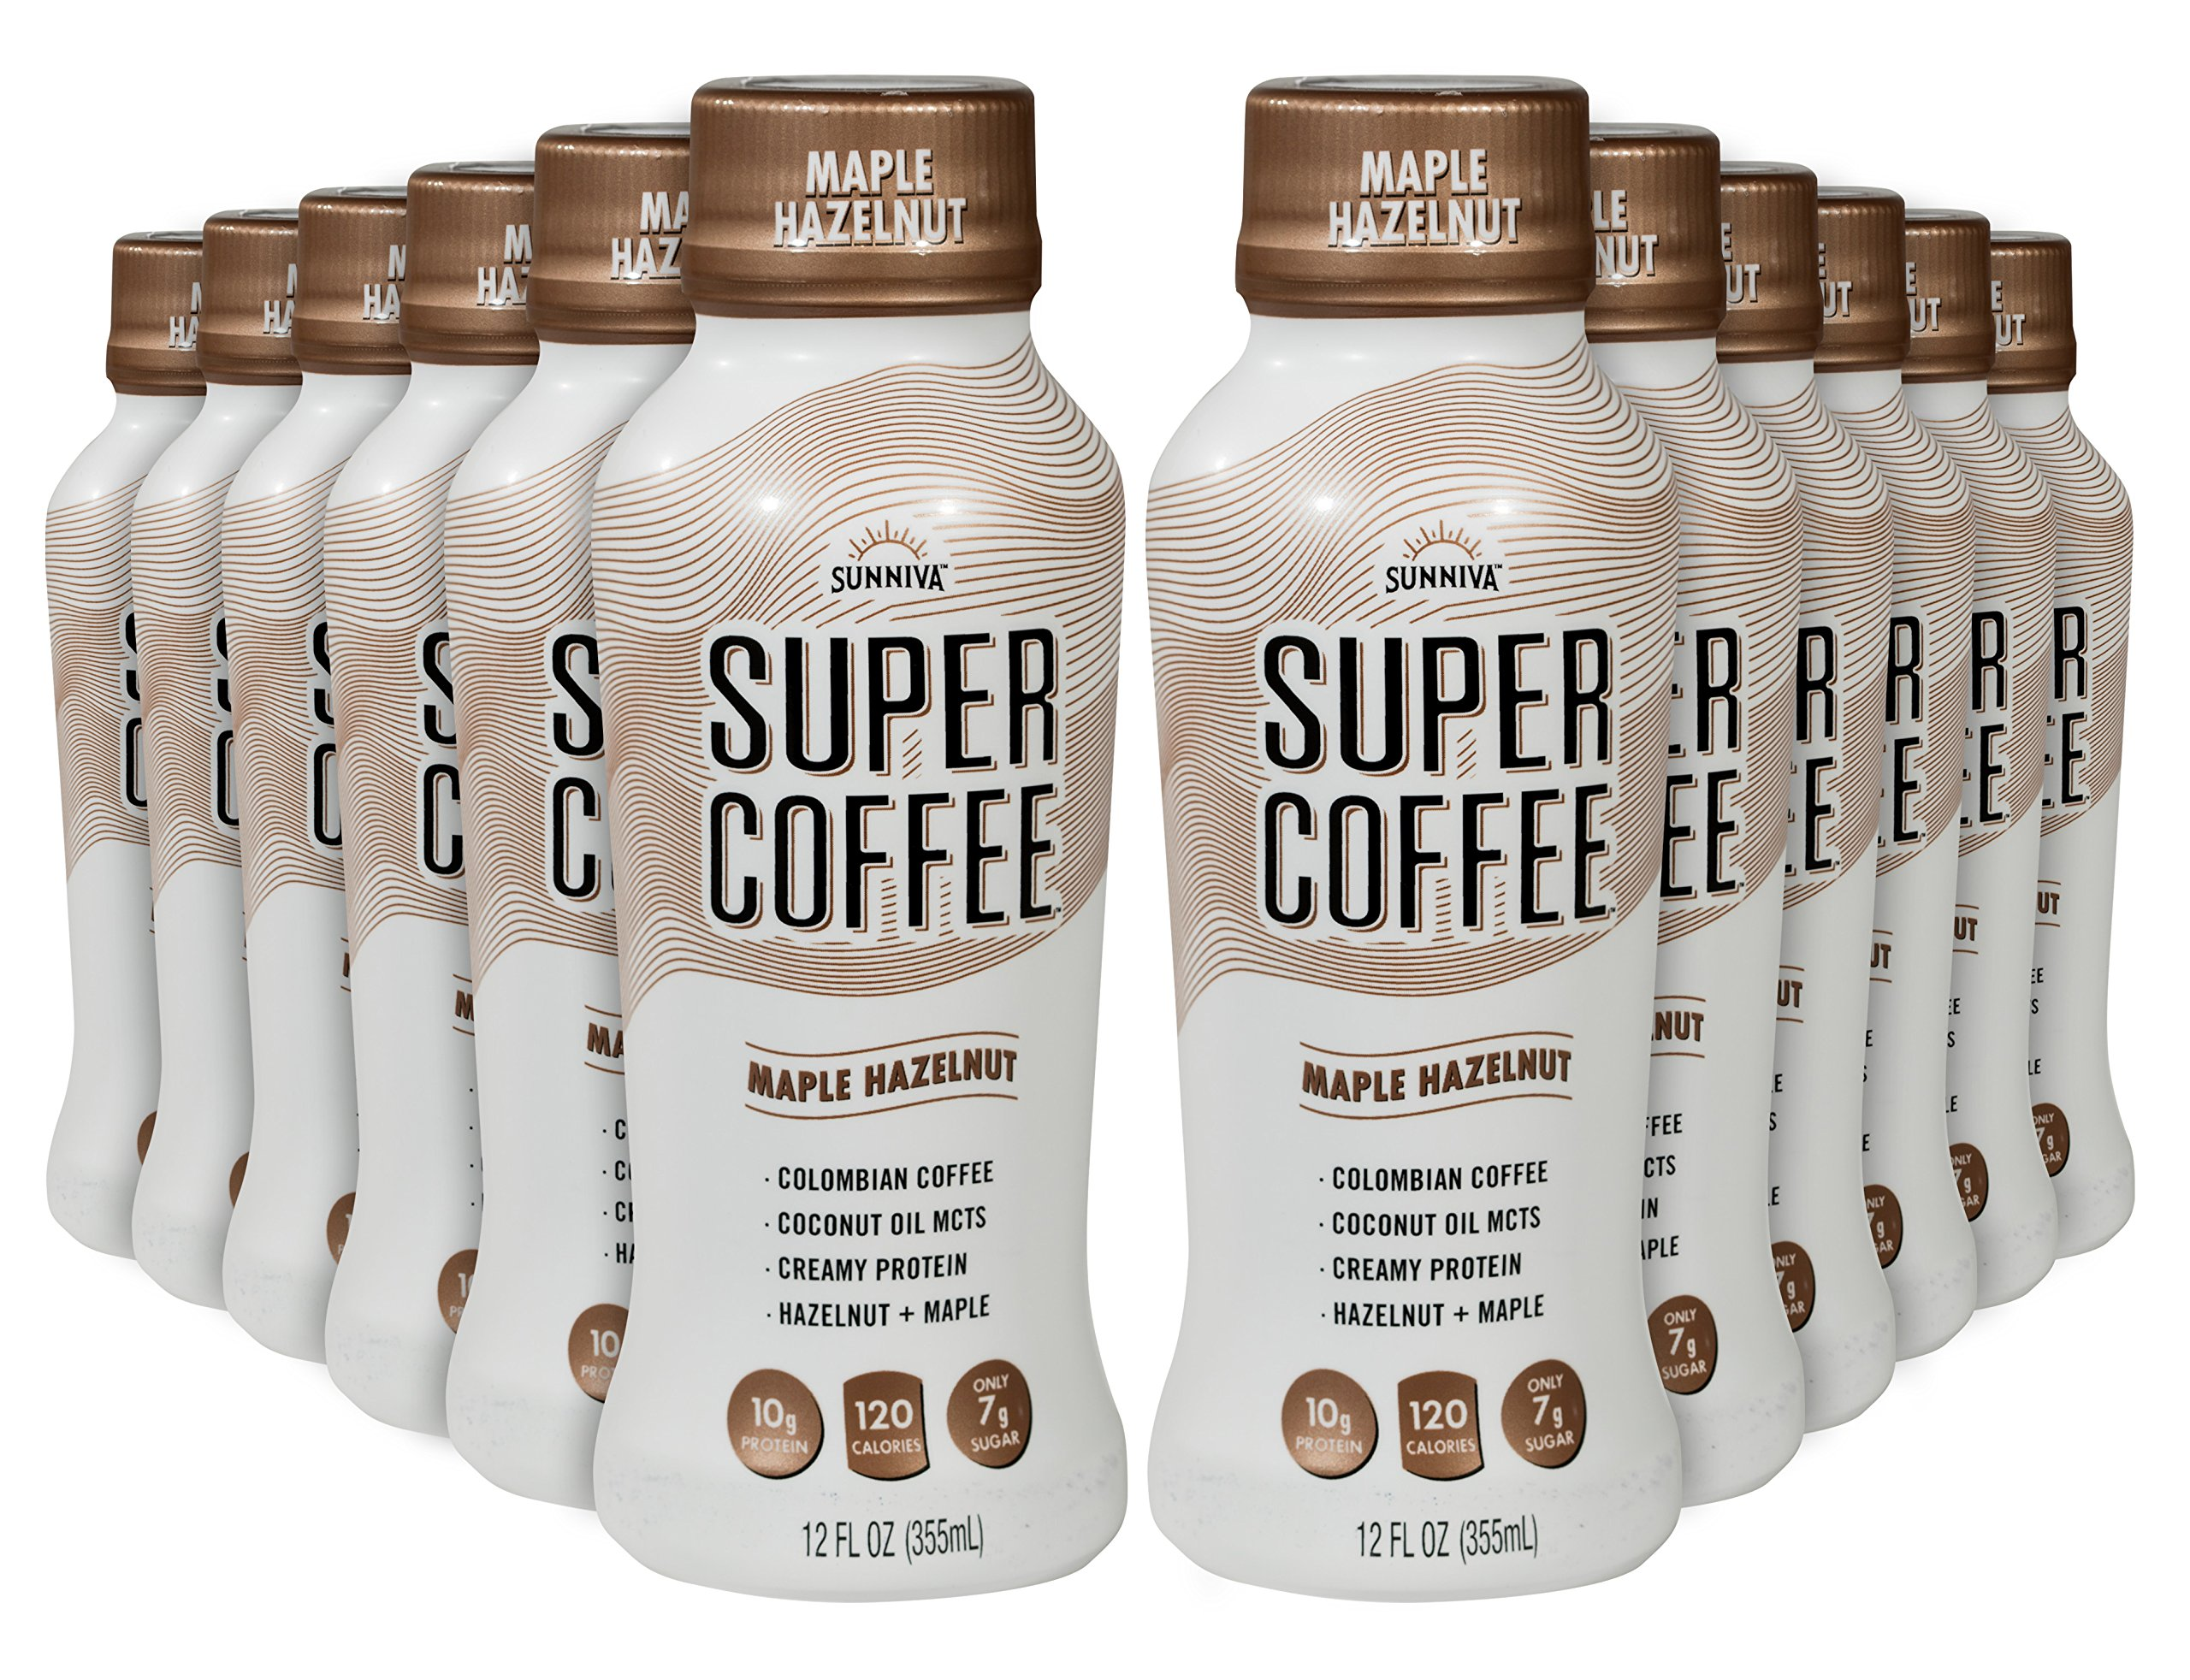 SUNNIVA Super Coffee Maple Hazelnut - 10g Protein, Lactose Free, Soy Free, No Added Sugar, Gluten Free, Pack of 12